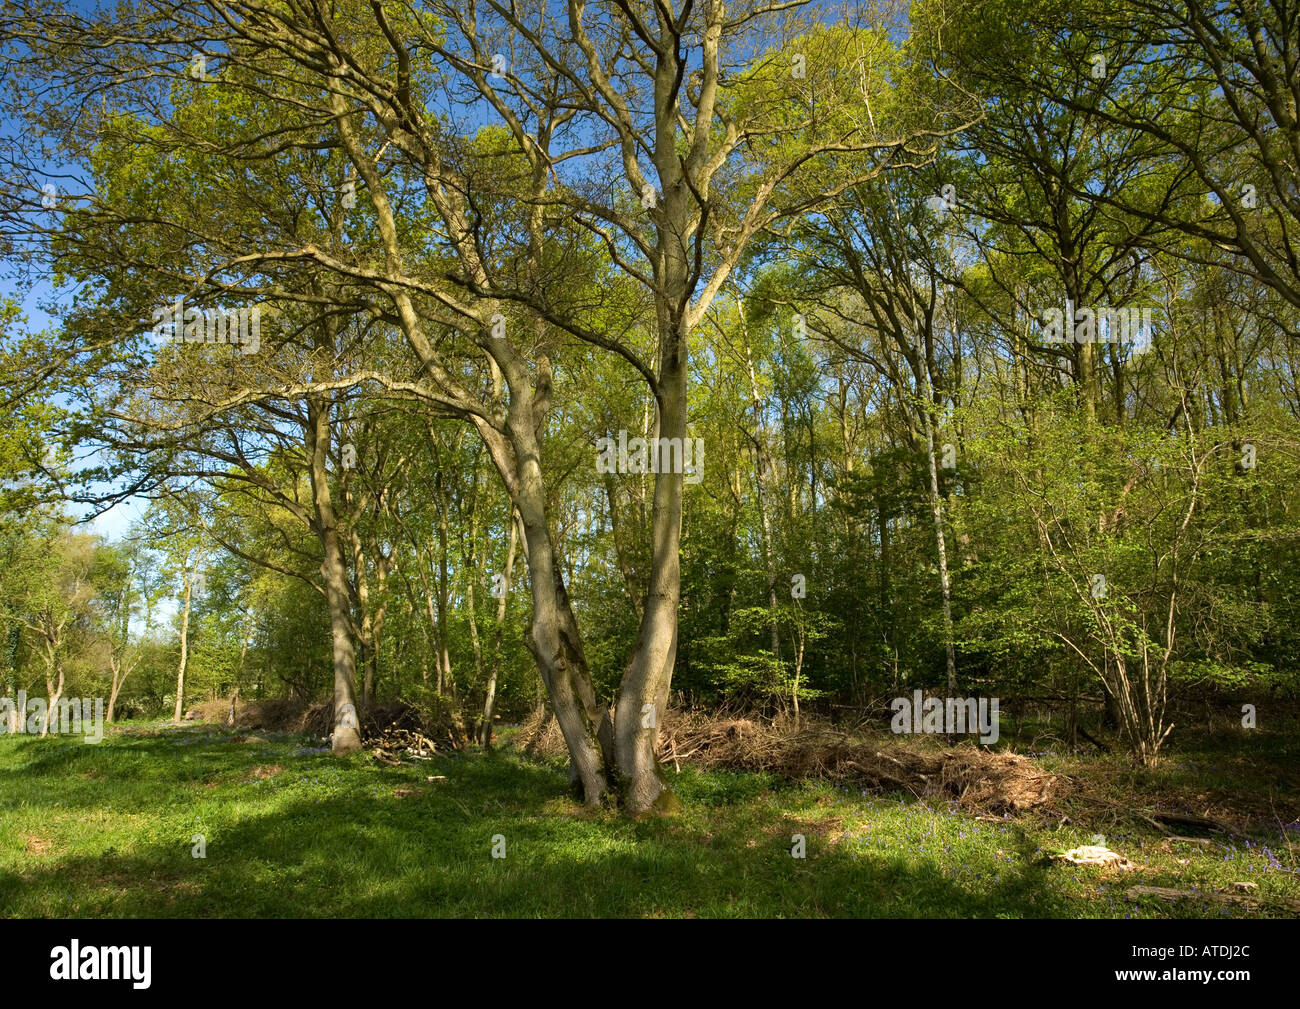 Ancient woodland at Wakerley Spinney SSSI Wakerley Great Wood Part of Rockingham Forest, Northamptonshire, England - Stock Image